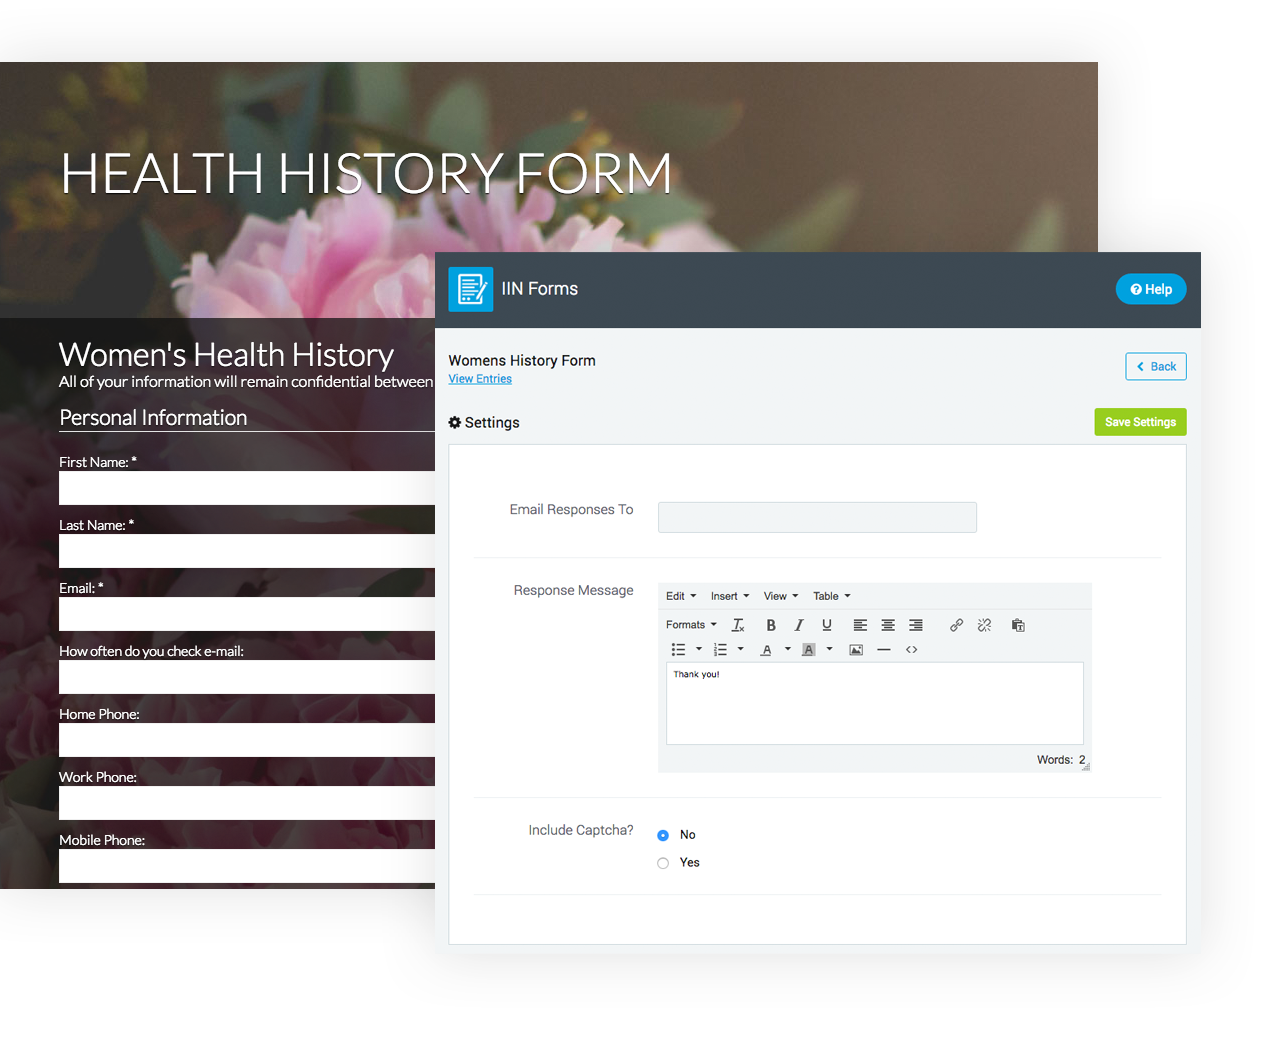 Built-in Health History Forms